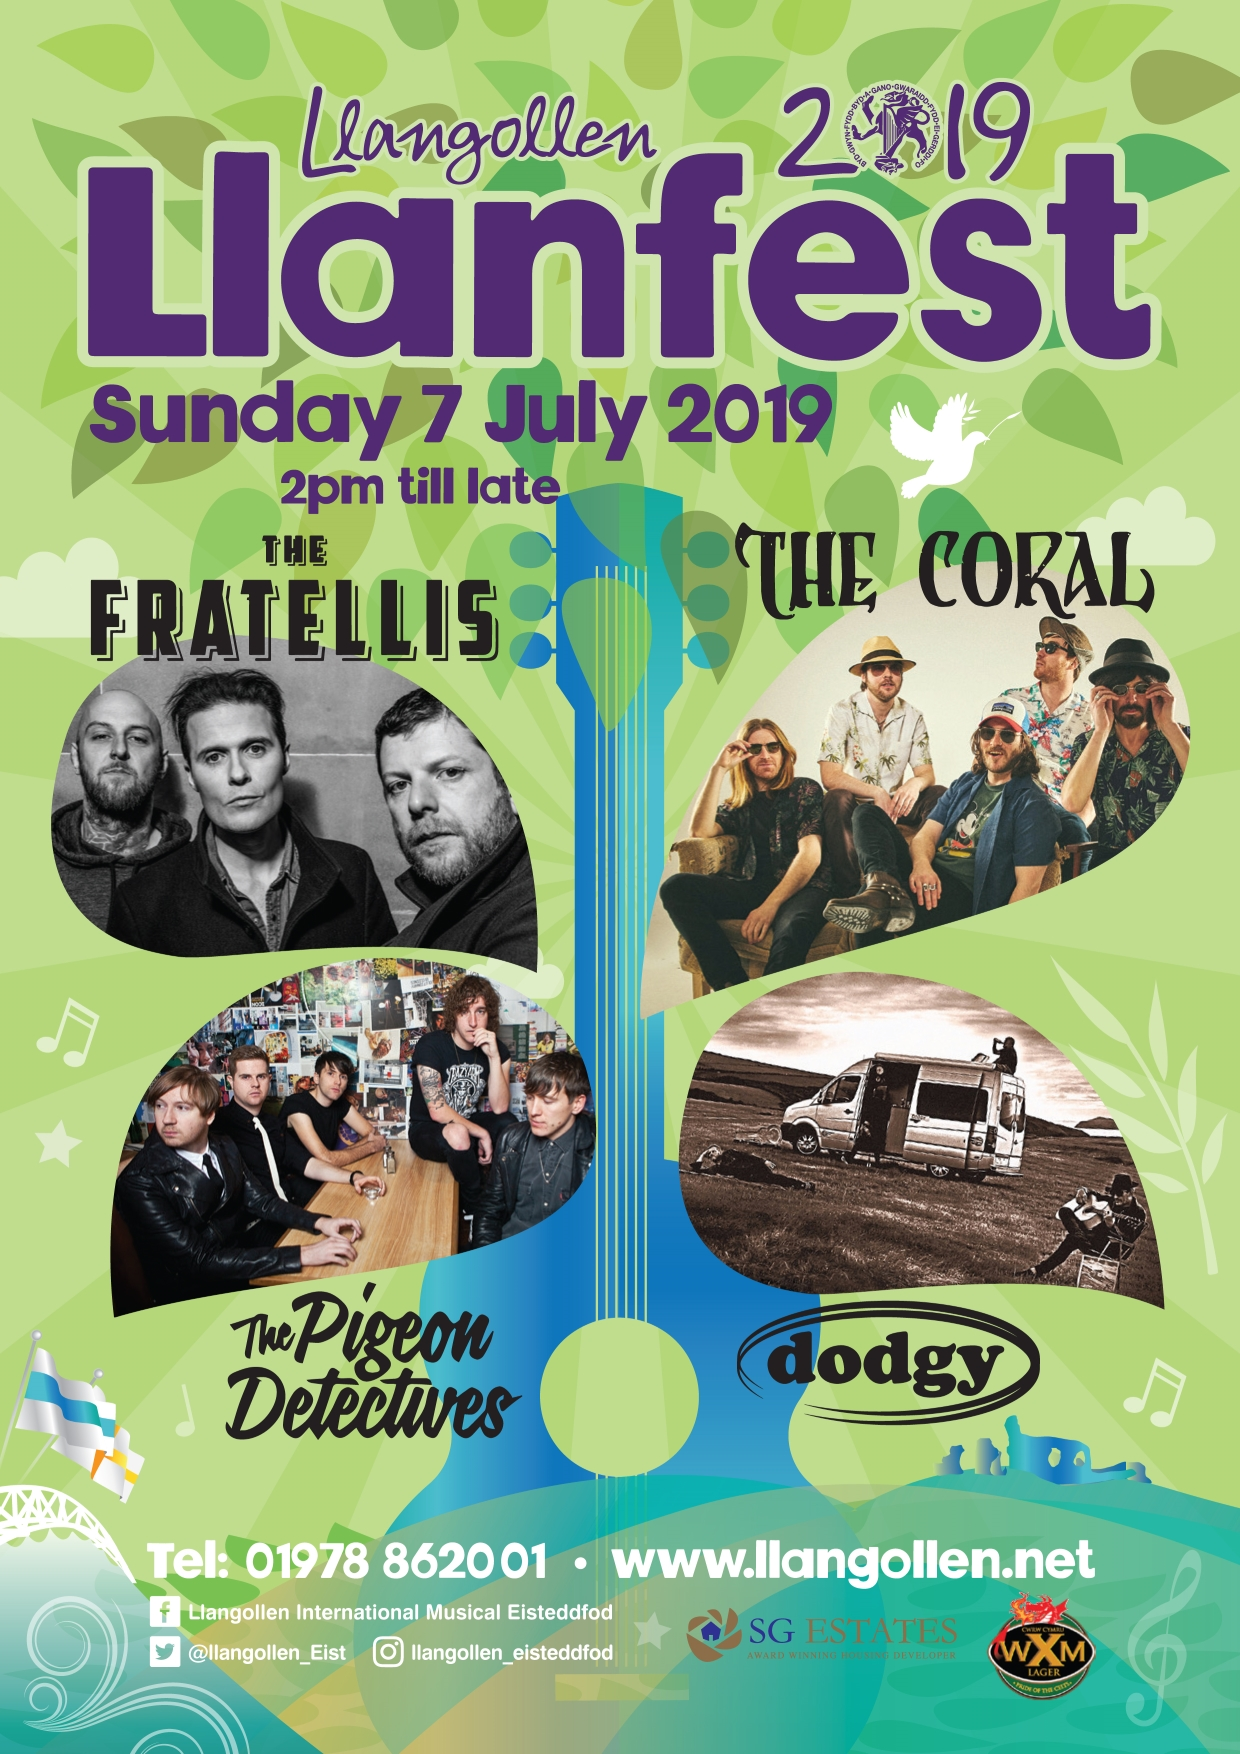 Llangollen 2019 – The LLanfest – The Fratellis, The Coral, The Pigeon Detectives, Dodgy